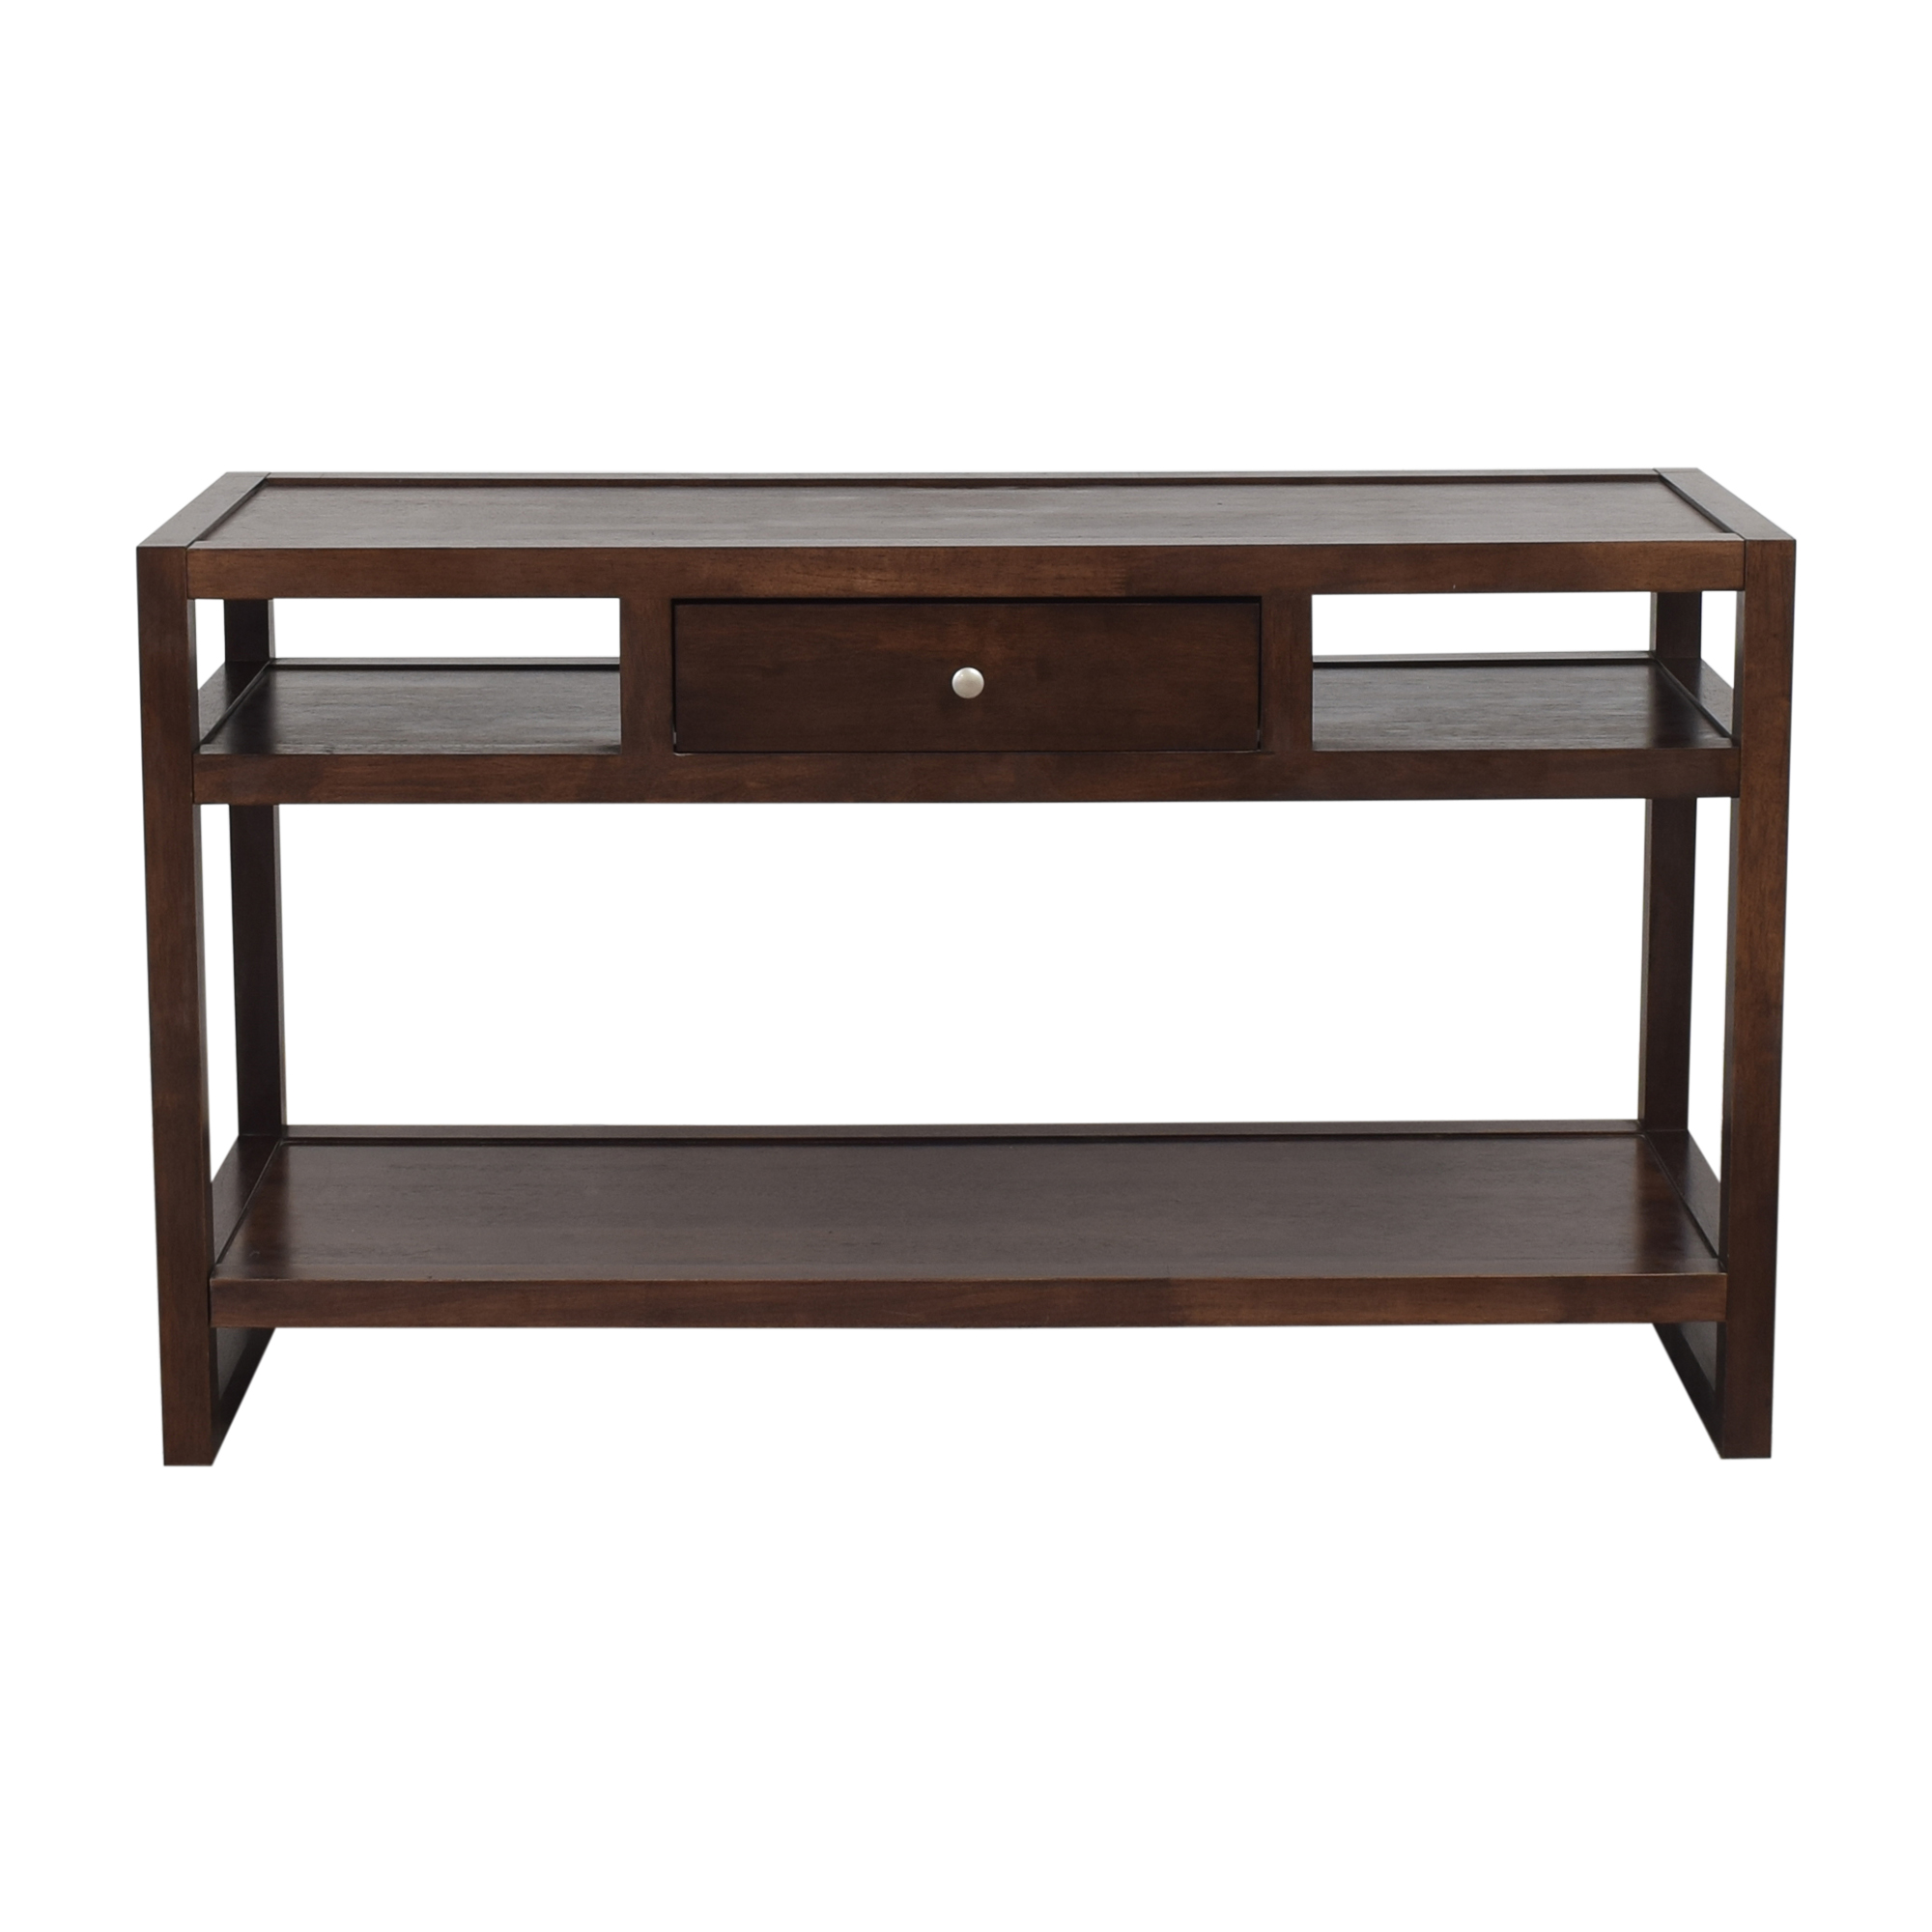 Overstock Single Drawer Console Table / Tables